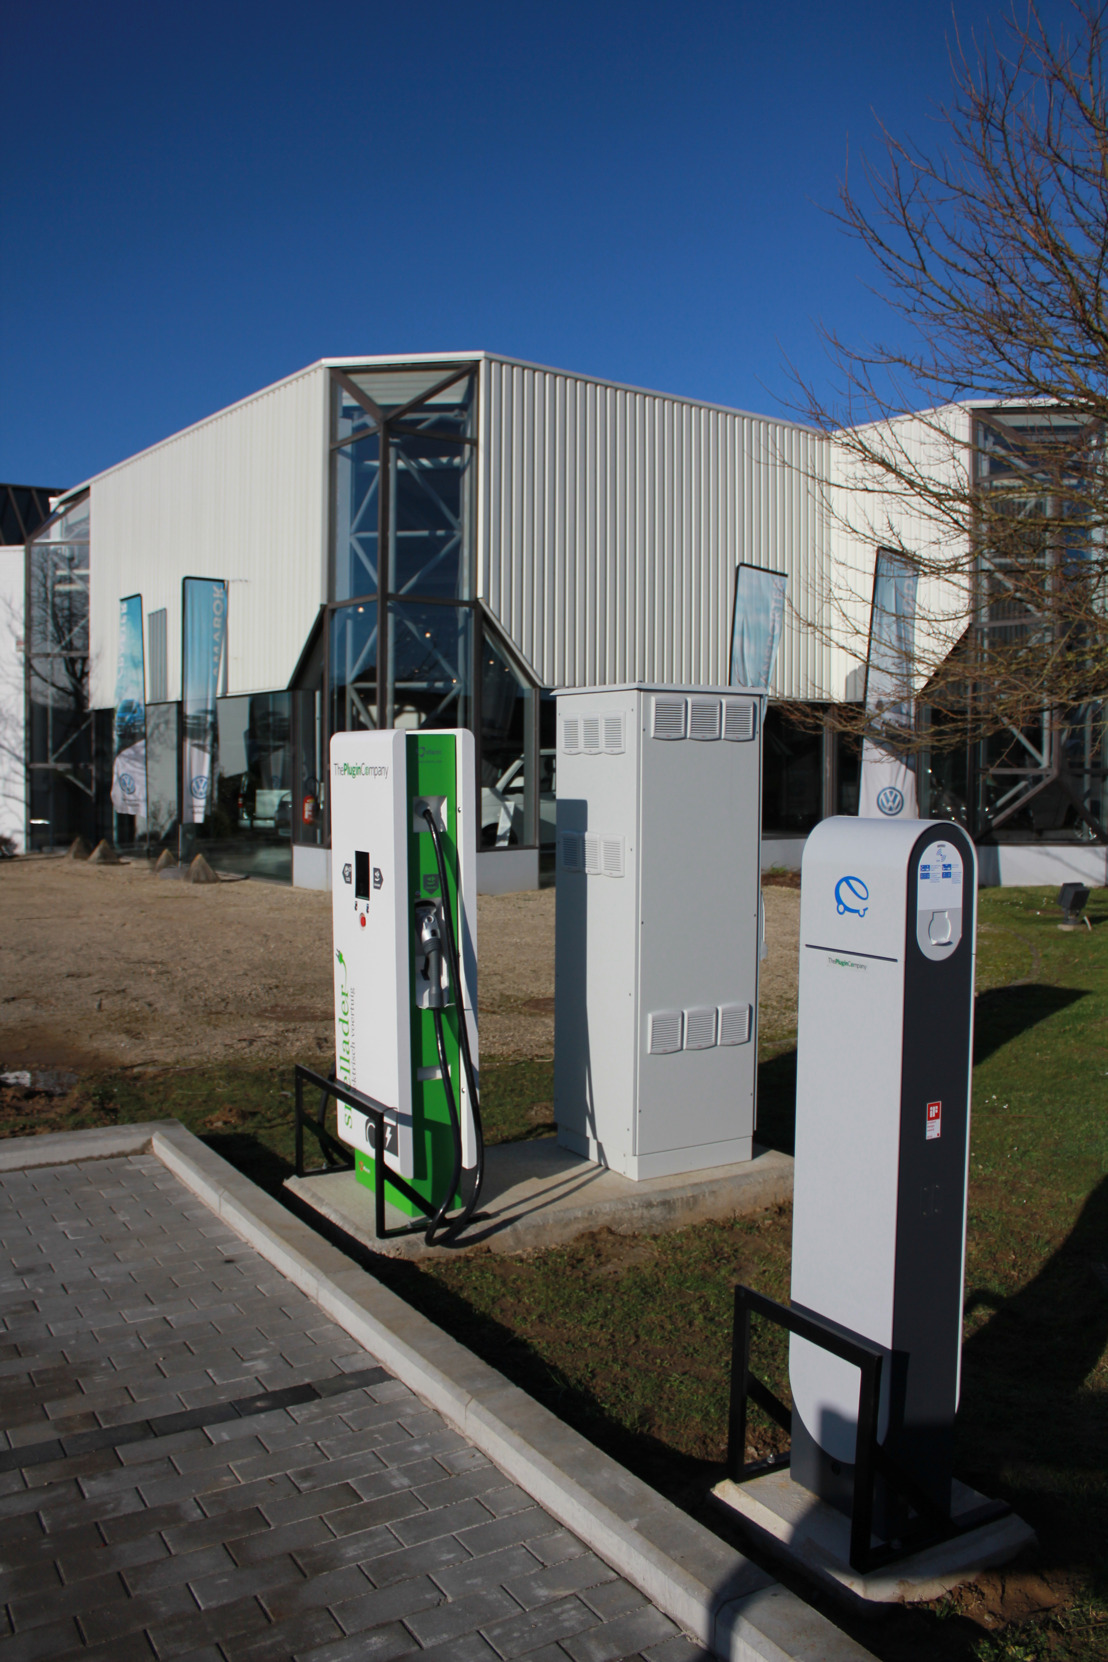 Point de recharge rapide public au Volkswagen Contact Center